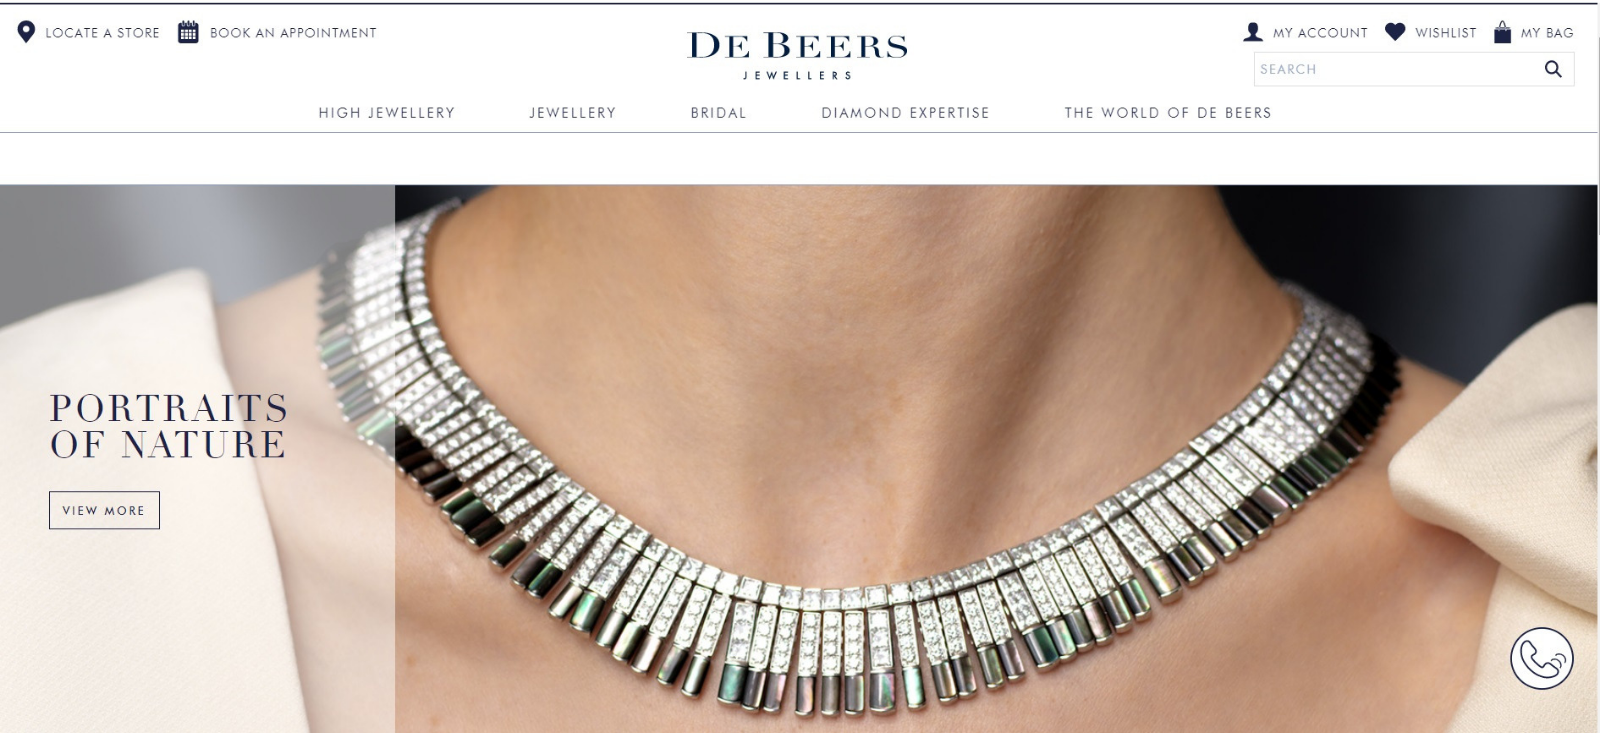 De Beers Diamond Jewellery - The William Agency - Branded Copywriting